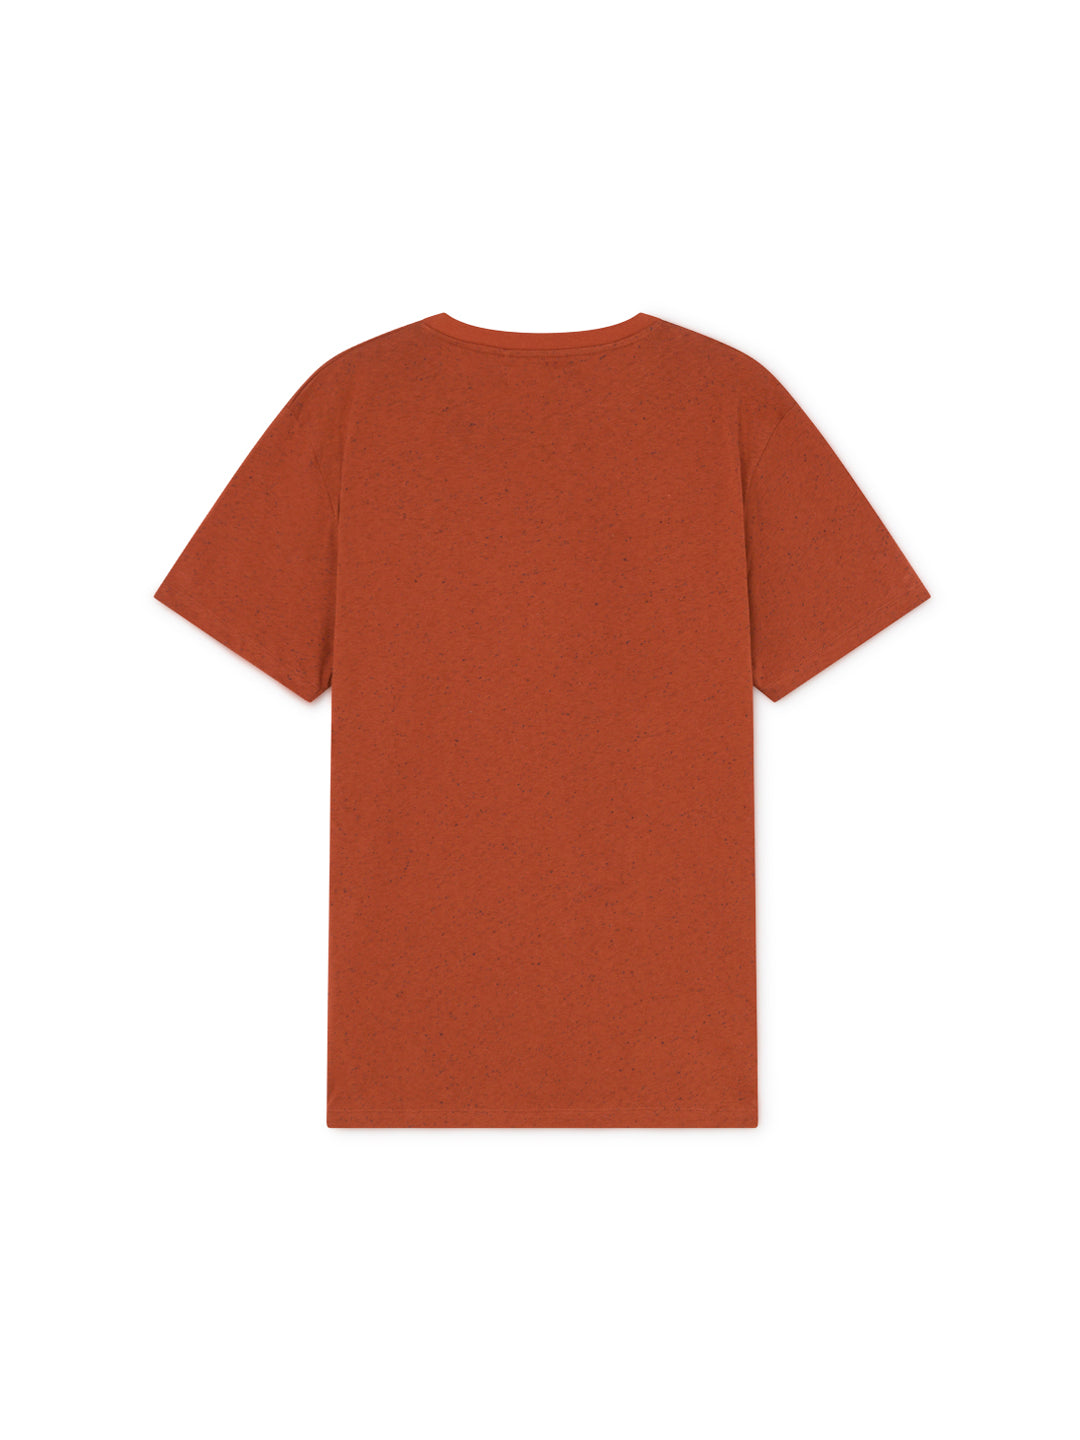 TWOTHIRDS Mens Tee: Ipun - Picante back